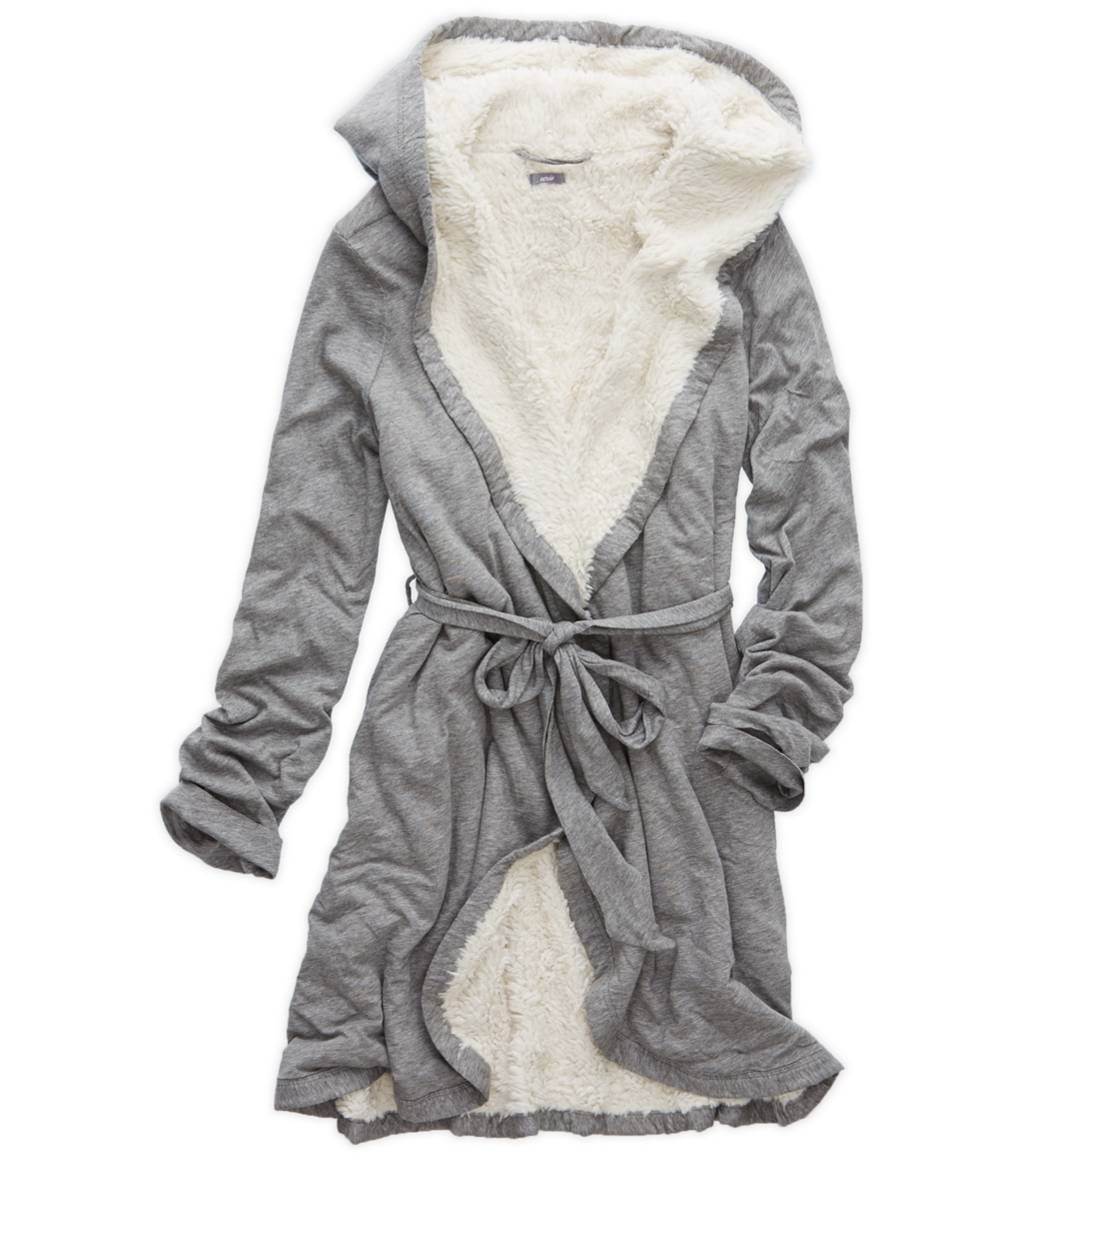 Omg This Robe Looks Amazing Medium Or Large To Be Comfy